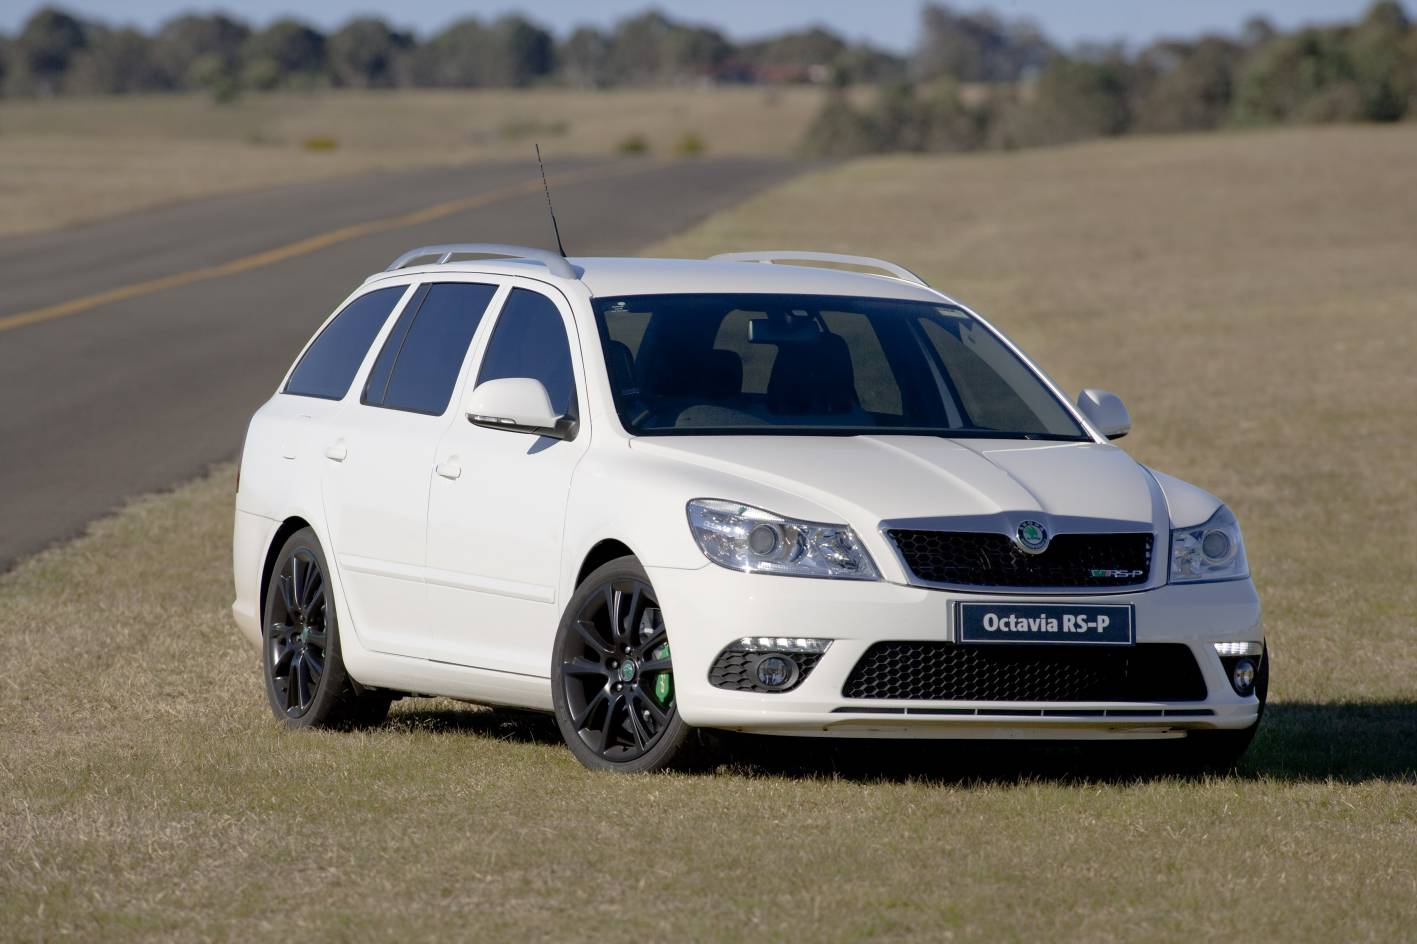 skoda octavia rs p launched in australia autoevolution. Black Bedroom Furniture Sets. Home Design Ideas